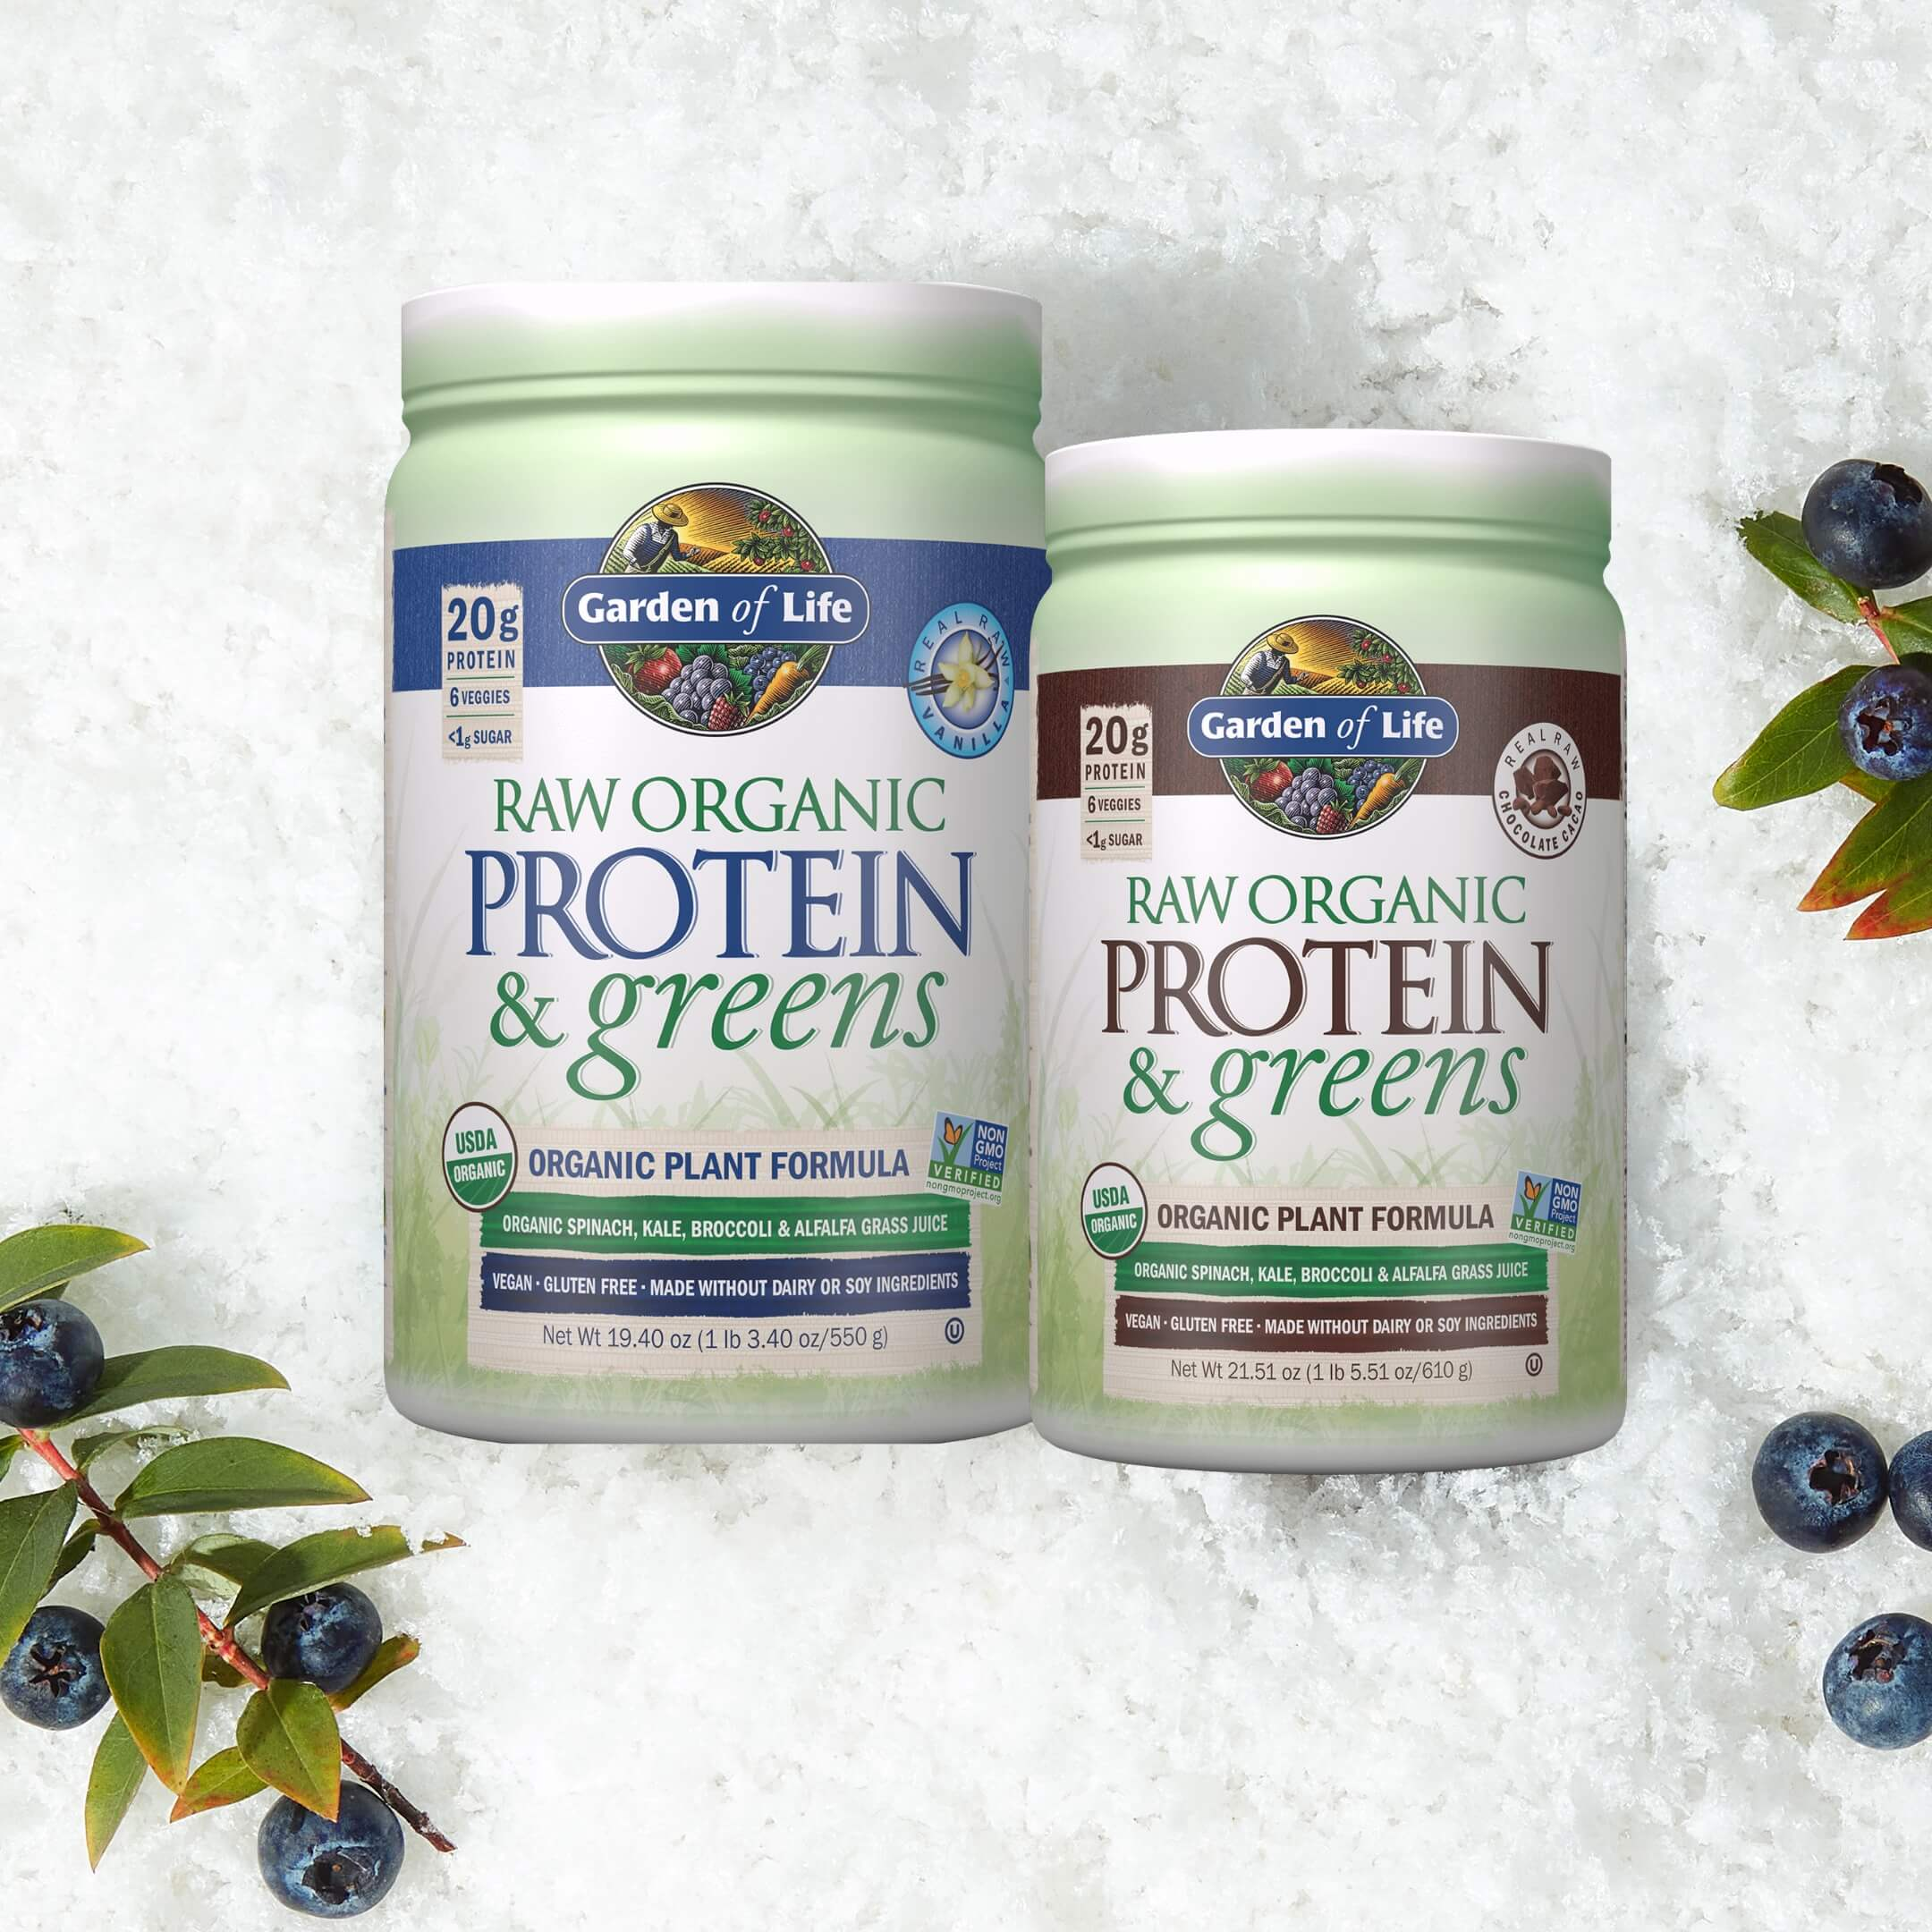 Whether you're looking to build your body mass or get the best out of plant protein, we've got the protein powder for you.